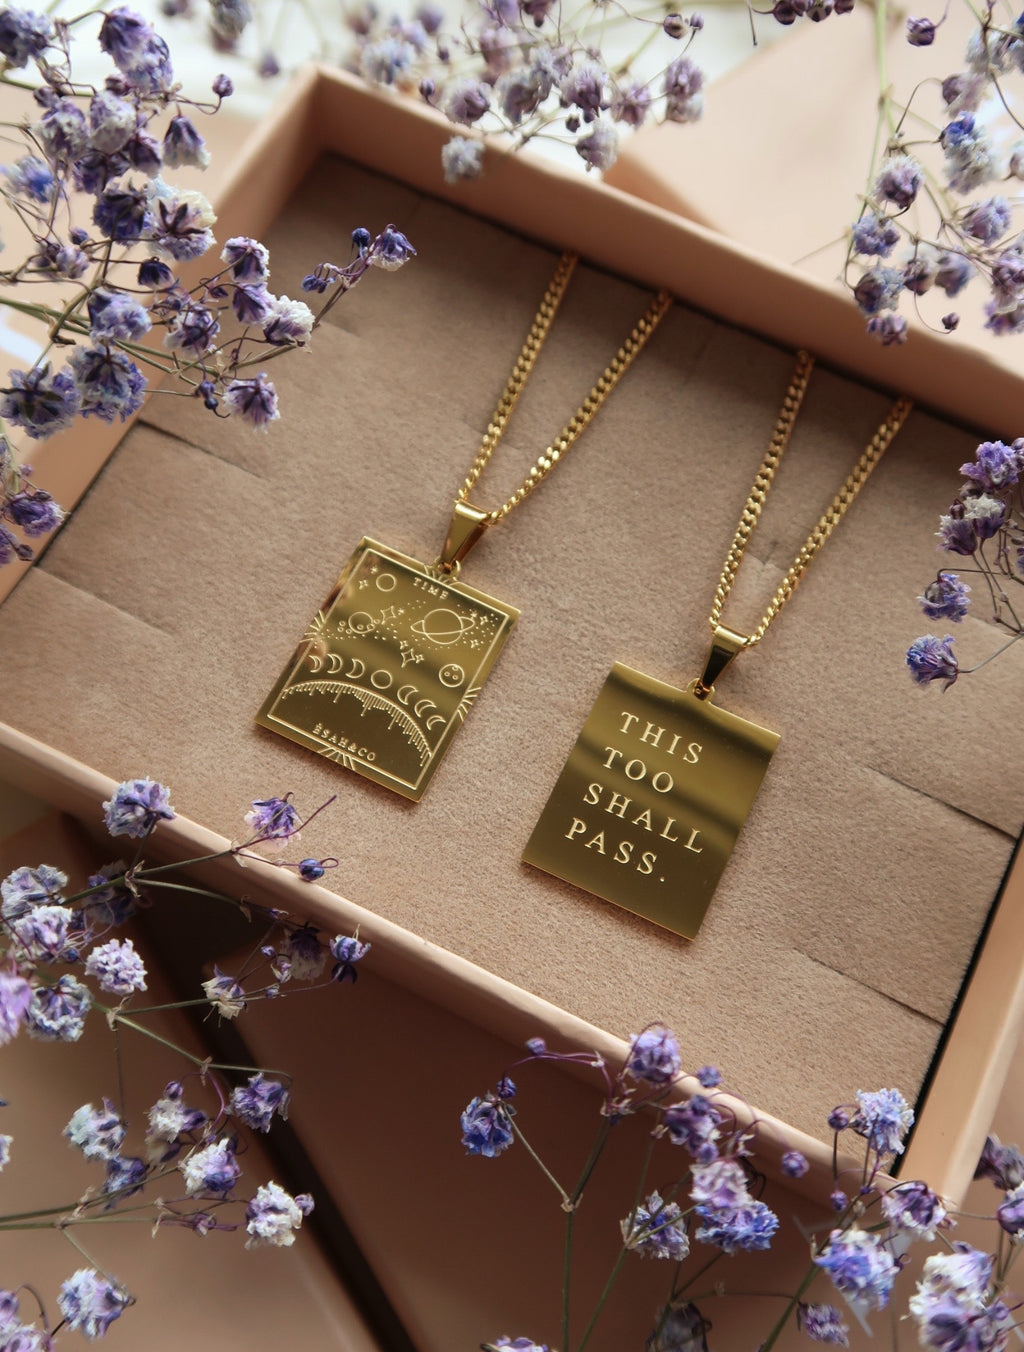 TIME Affirmation Pendant Necklace (PRE-ORDER) - Esah and Co